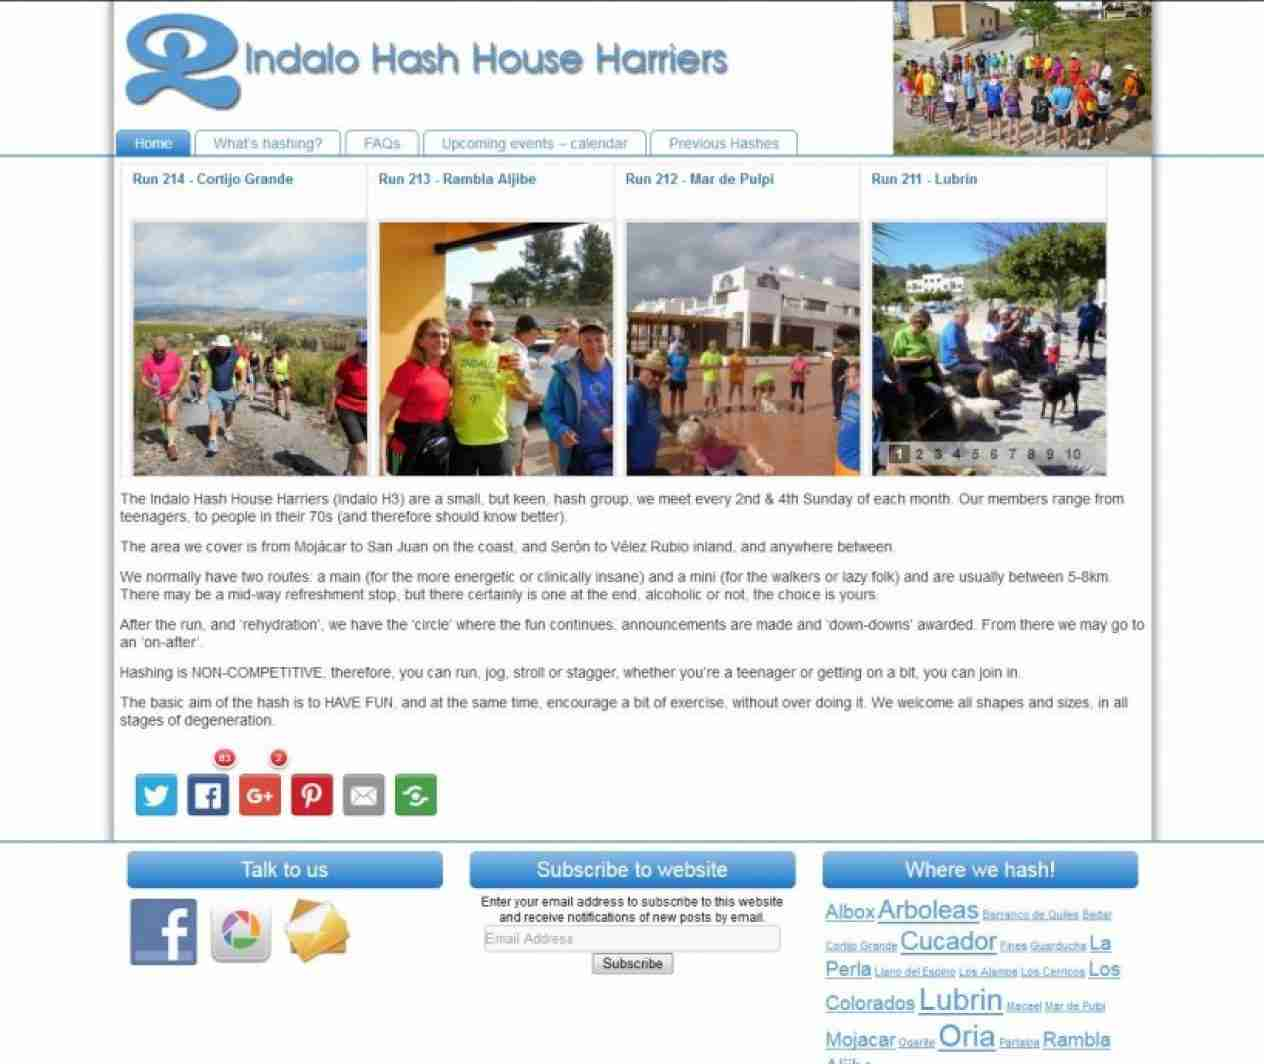 Indalo Hash House Harriers